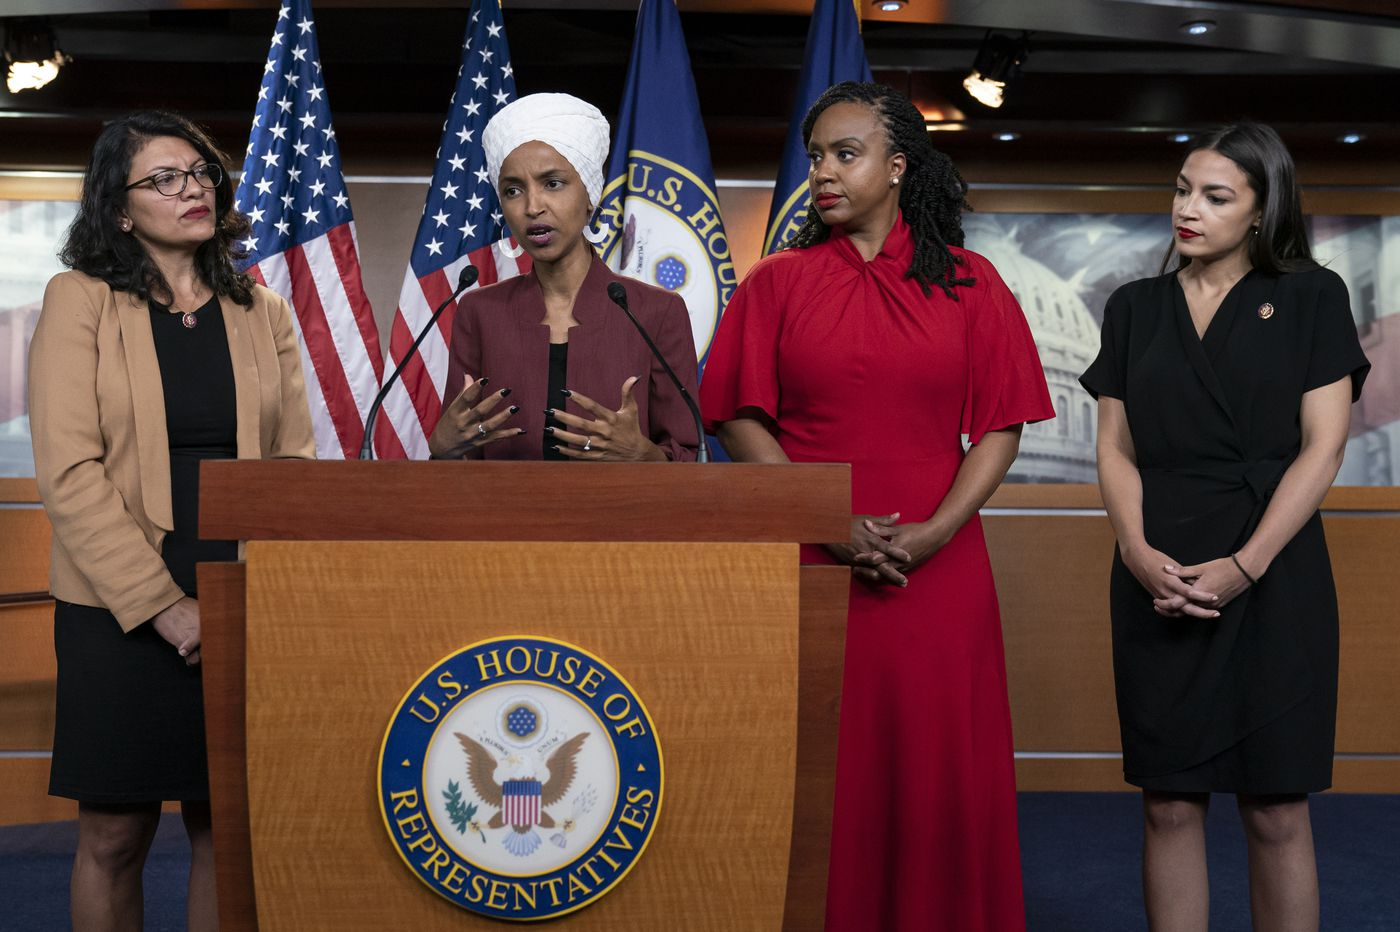 The seeds of 'send her back' chants were sown by Trump's racism. Congress should respond. | Editorial